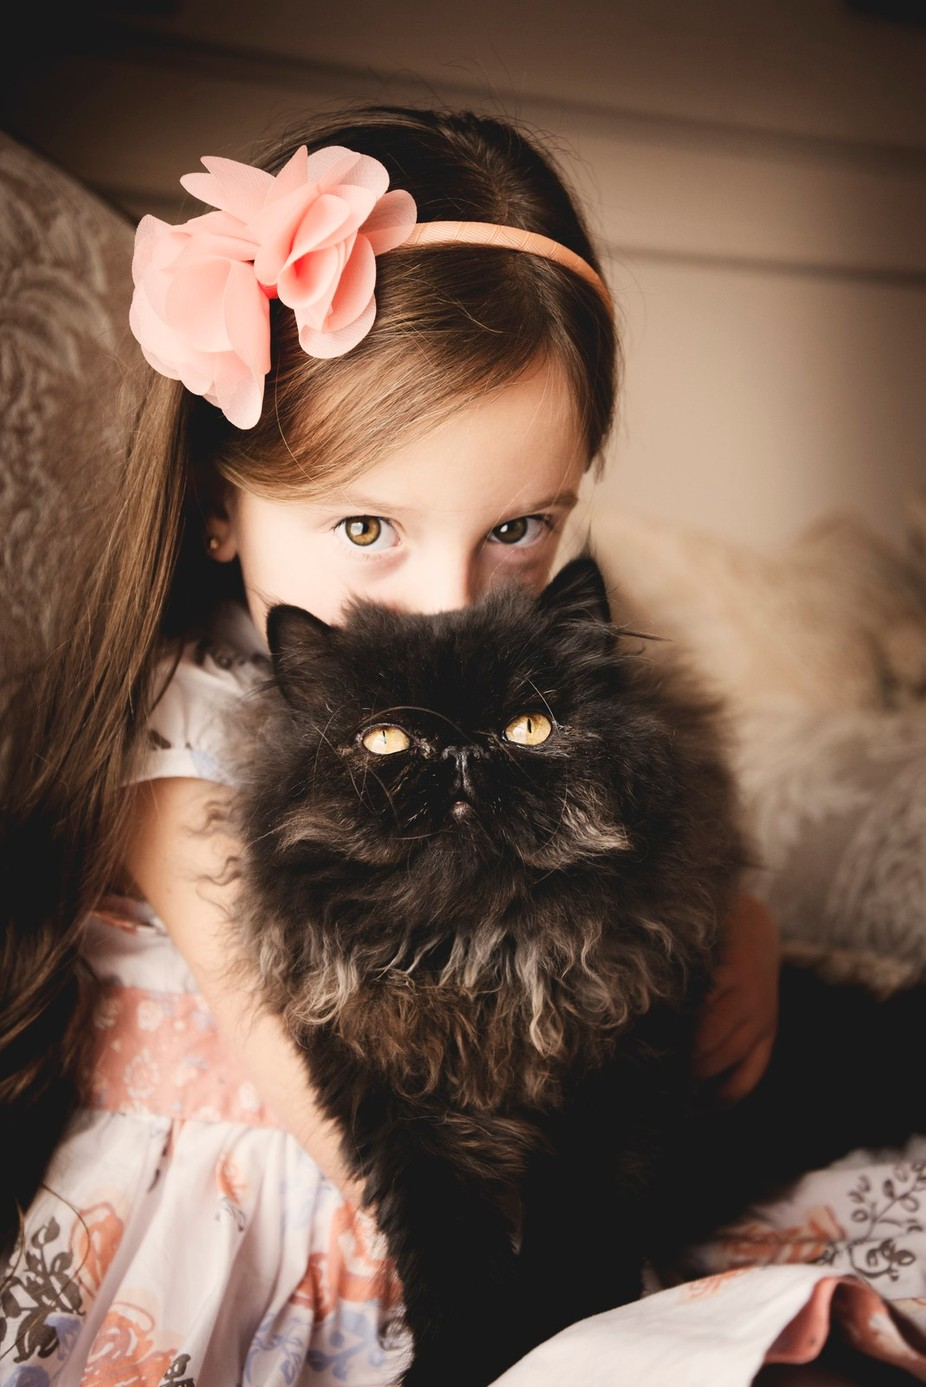 The eyes of Aslan by LisaHodsonPhotography - Kids And Pets Photo Contest